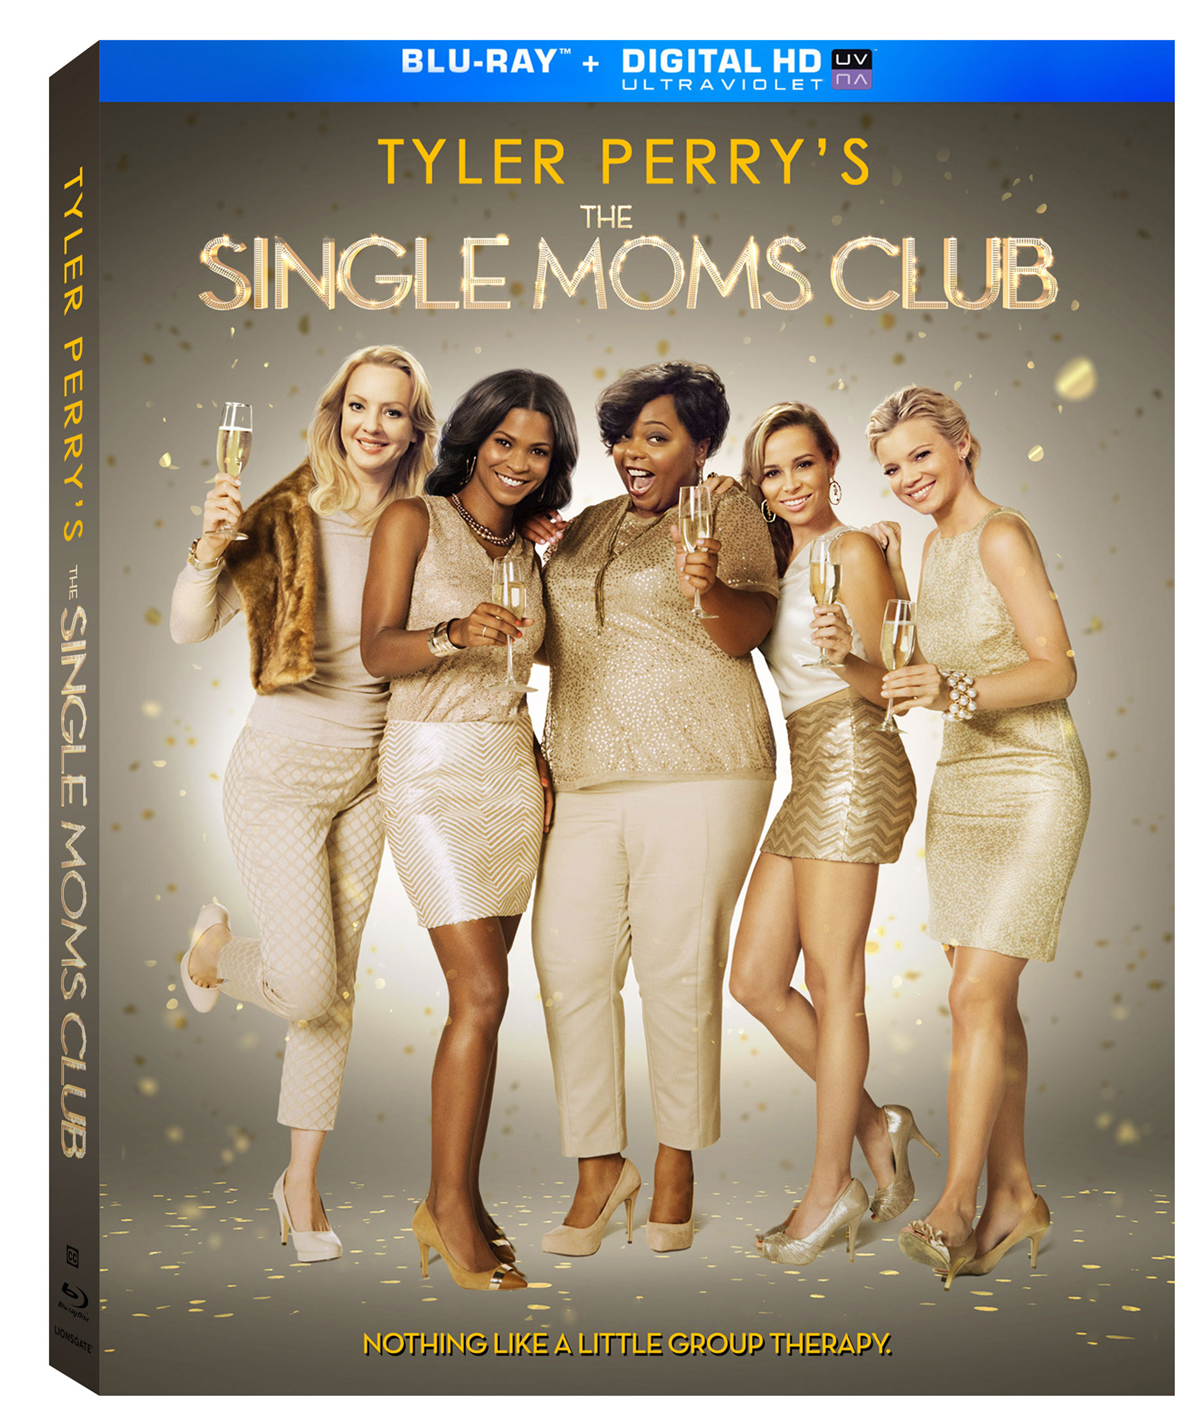 Check out two exclusive clips from single moms club blu ray single moms club bd ccuart Images